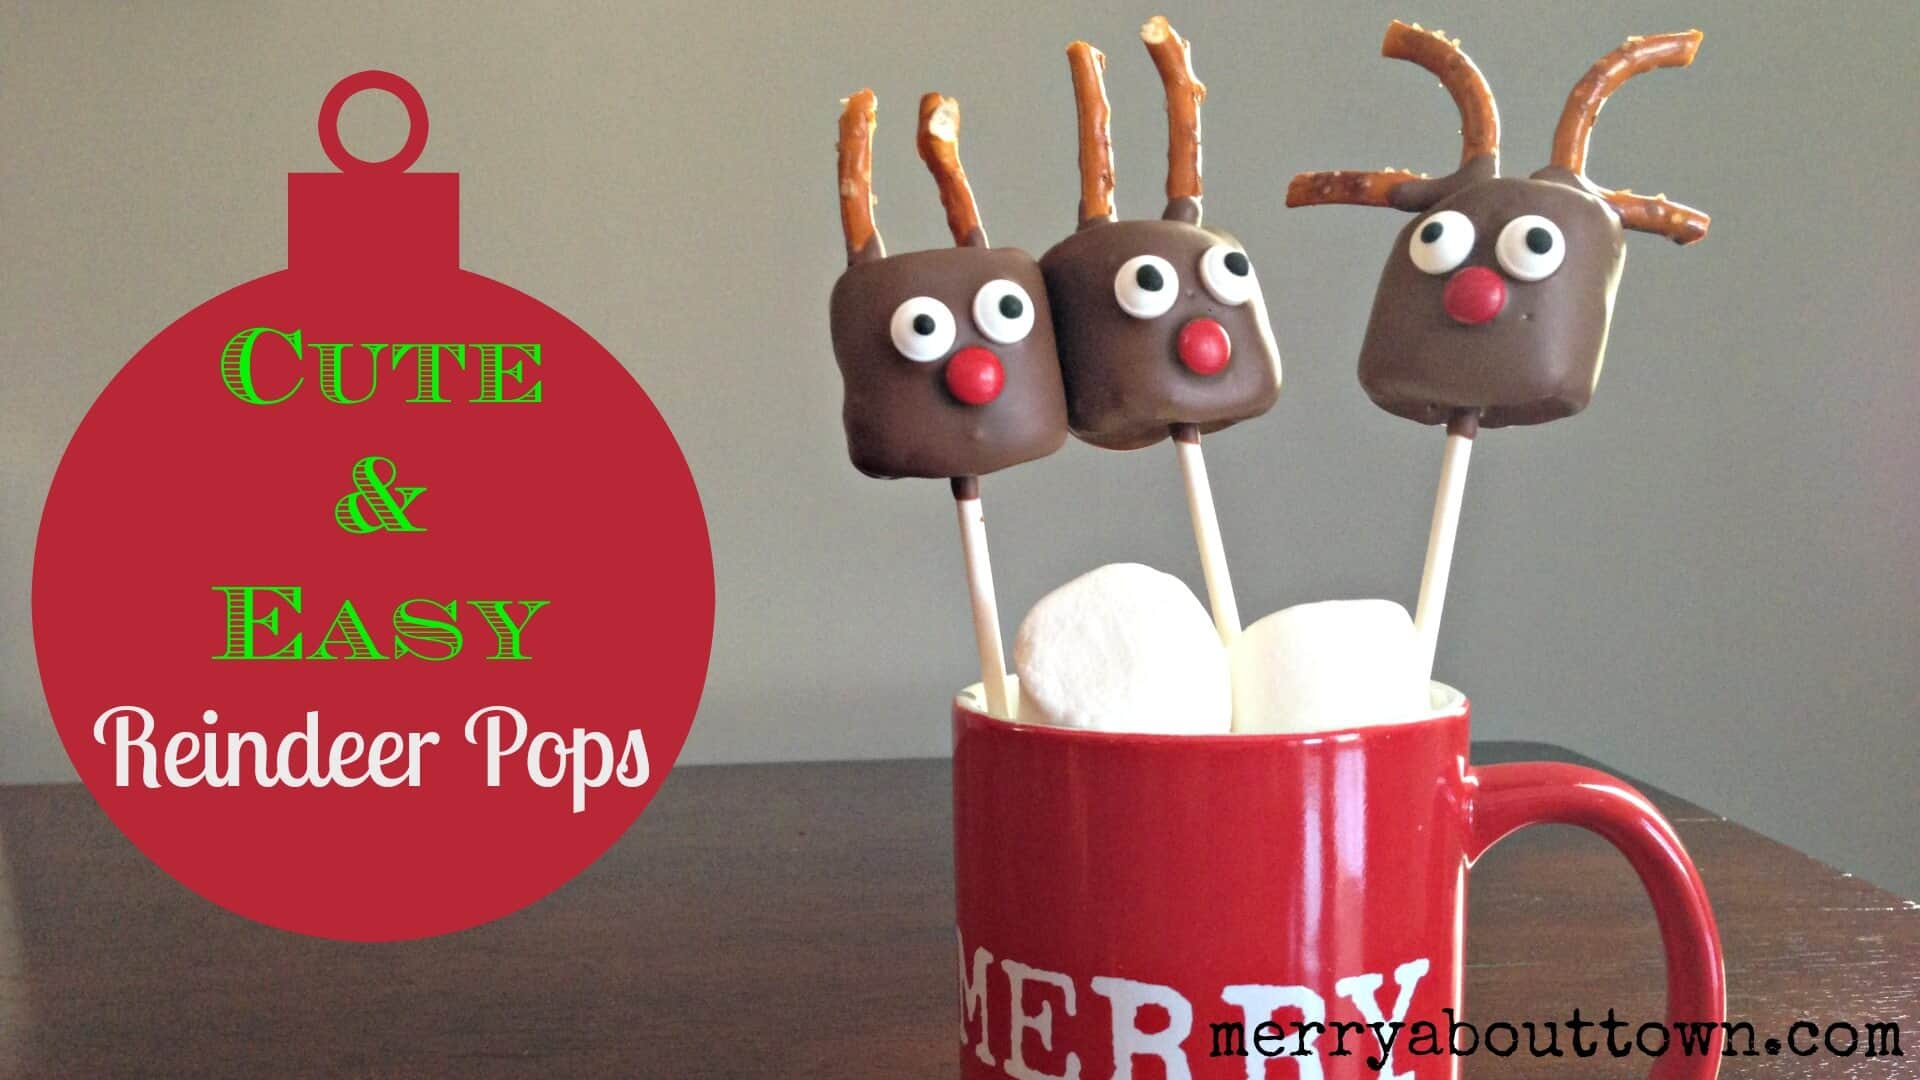 Cute and Easy Reindeer Pops - merry About Town